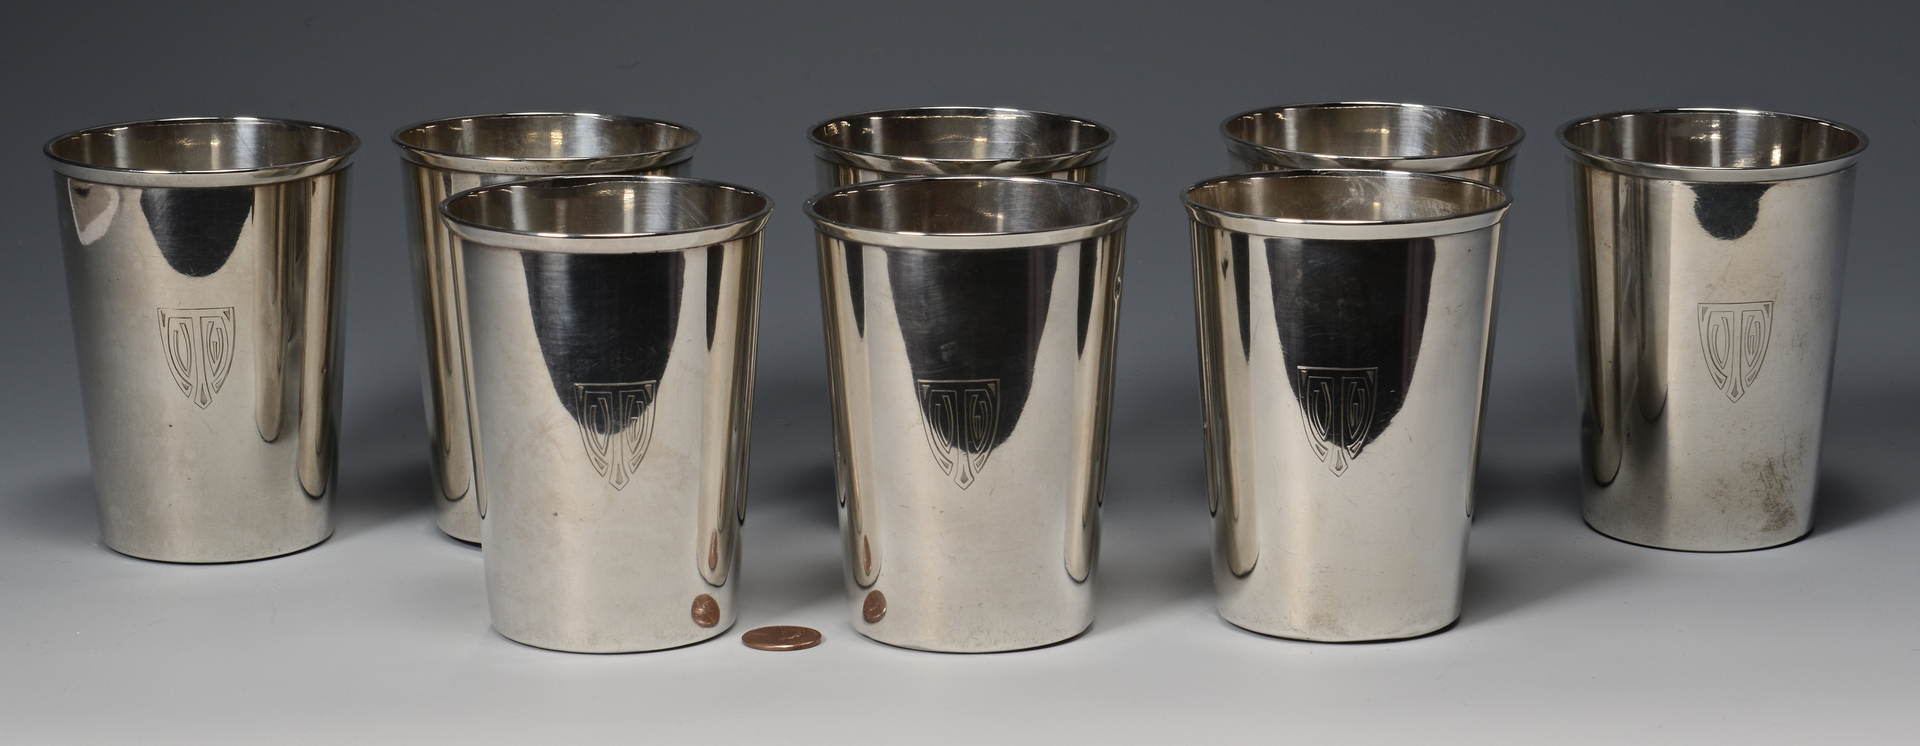 Lot 255: 8 Gorham Sterling Silver Cups